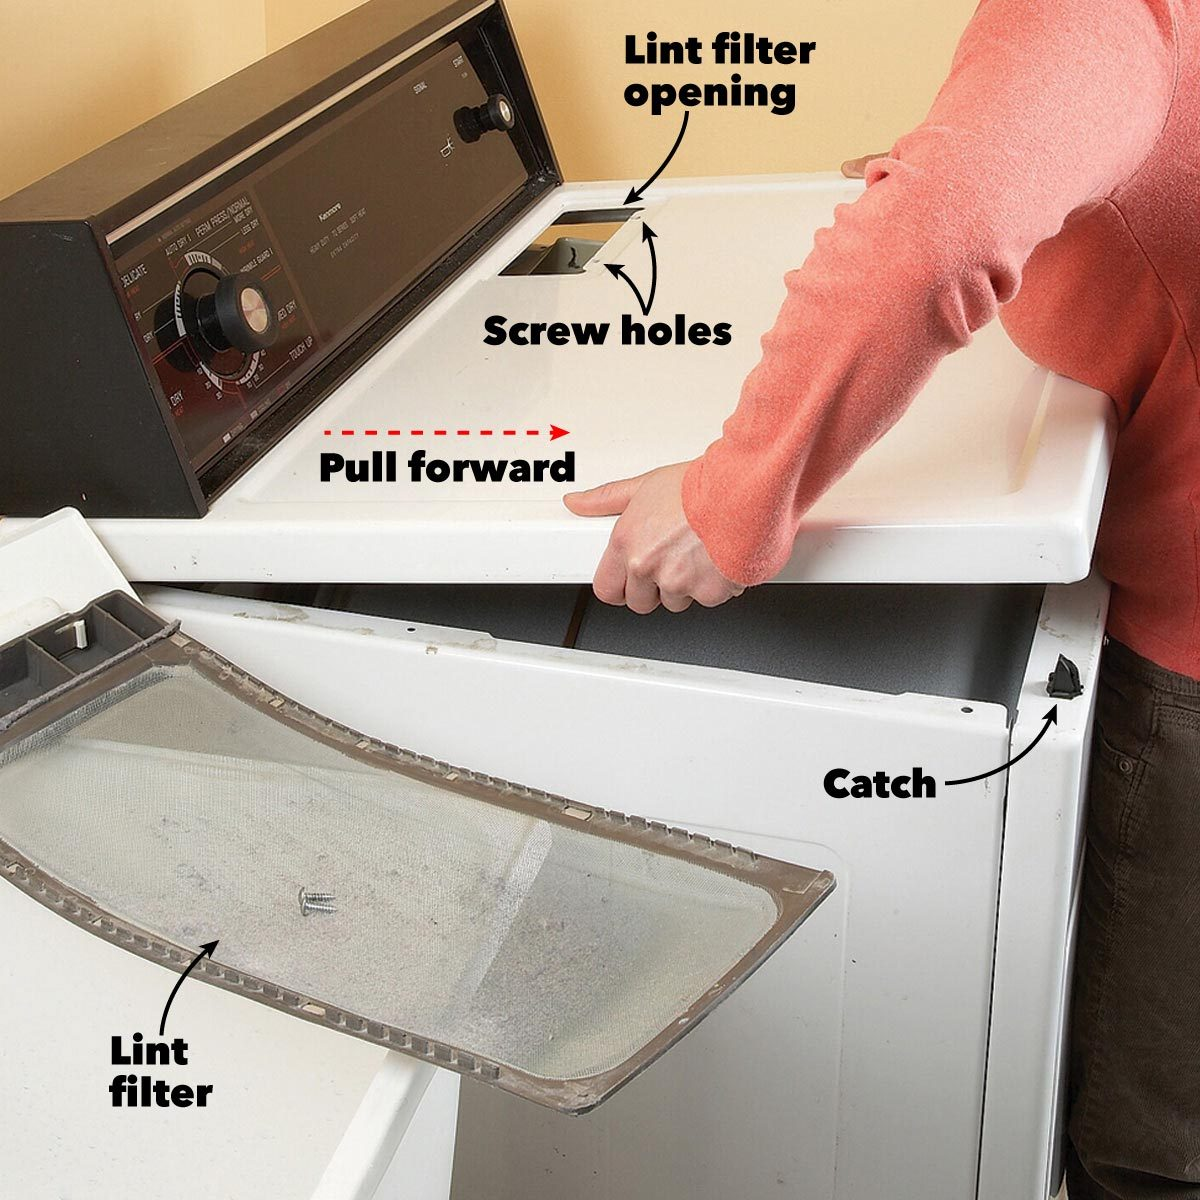 Dryer Lint Cleaning Tips The Family Handyman - Dryer Lint Cleaner